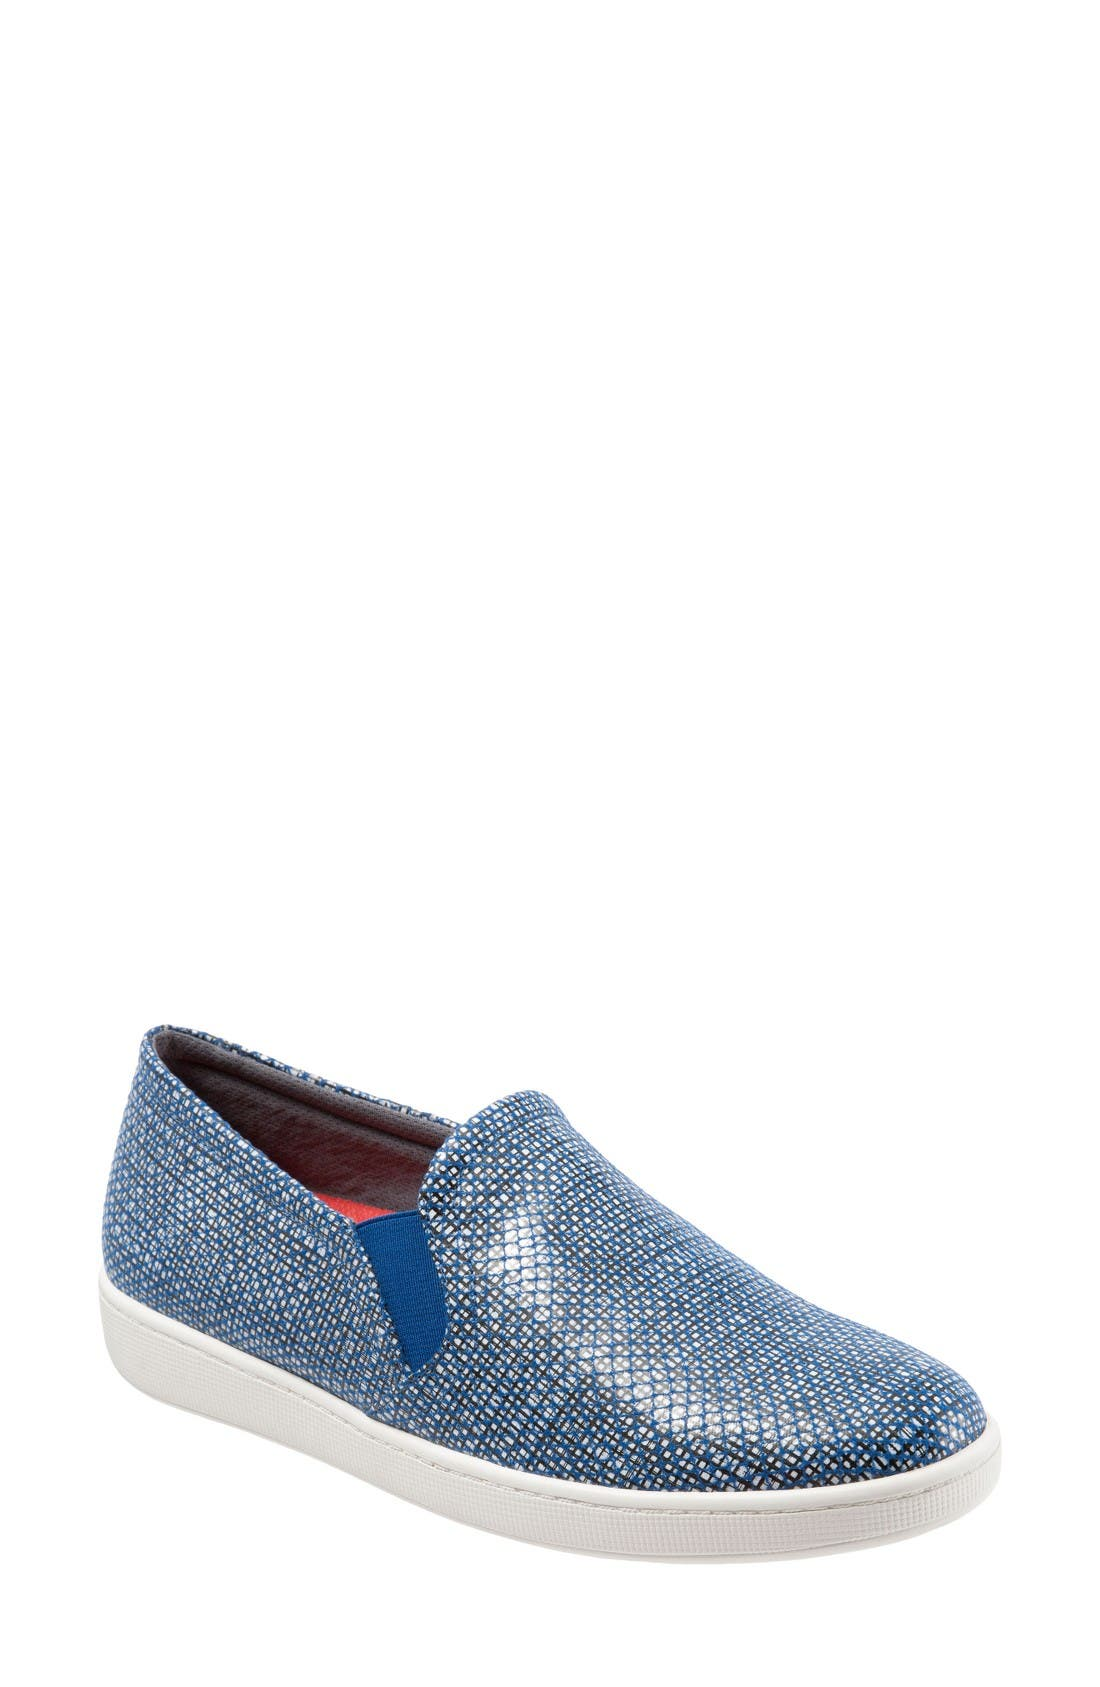 'Americana' Slip-On Sneaker,                         Main,                         color, Navy Perforated